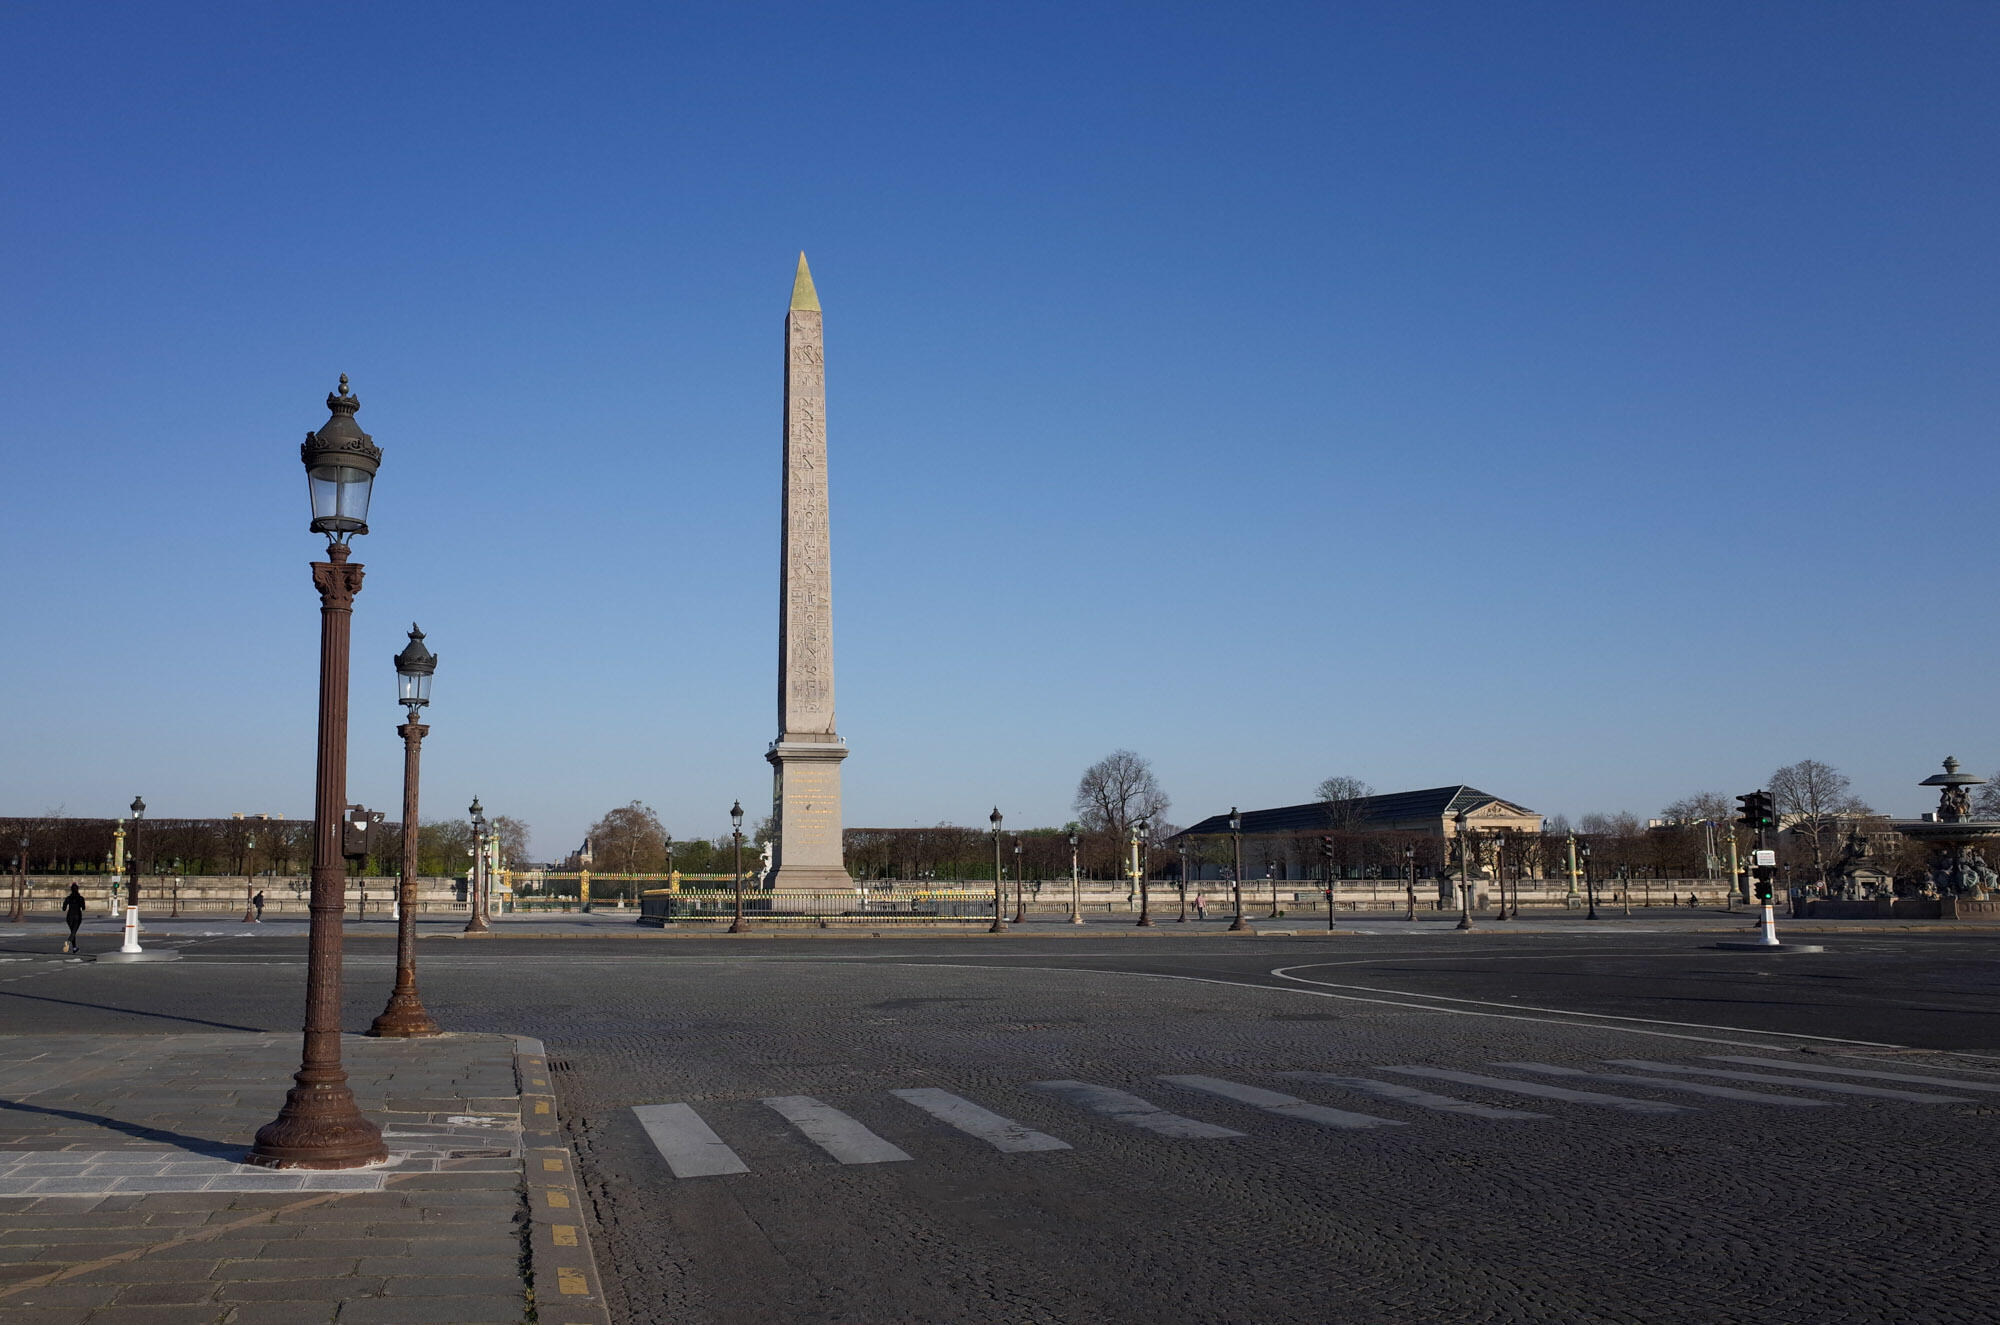 The Place de la Concorde, one of the Paris's central squares and usually teeming with traffic, is now mostly empty.